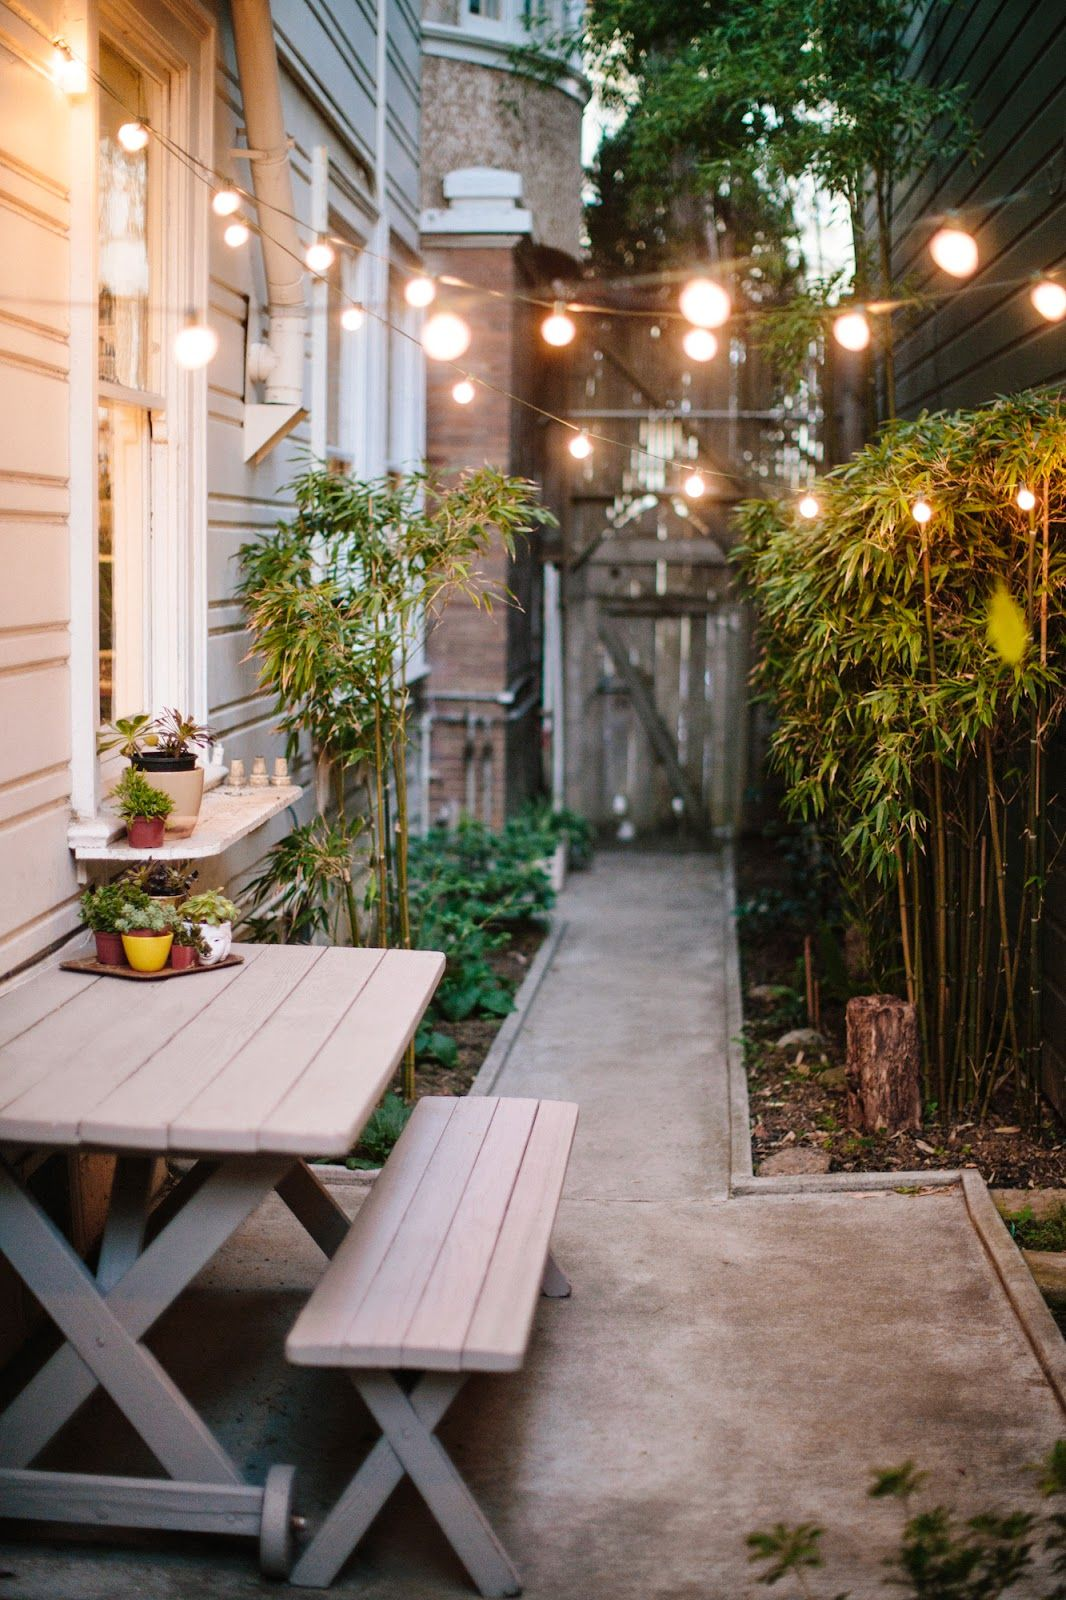 Hanging patio decor - Garden And Patio Beautiful Small And Narrow Side Yard House Design With Hanging Lamp Concrete